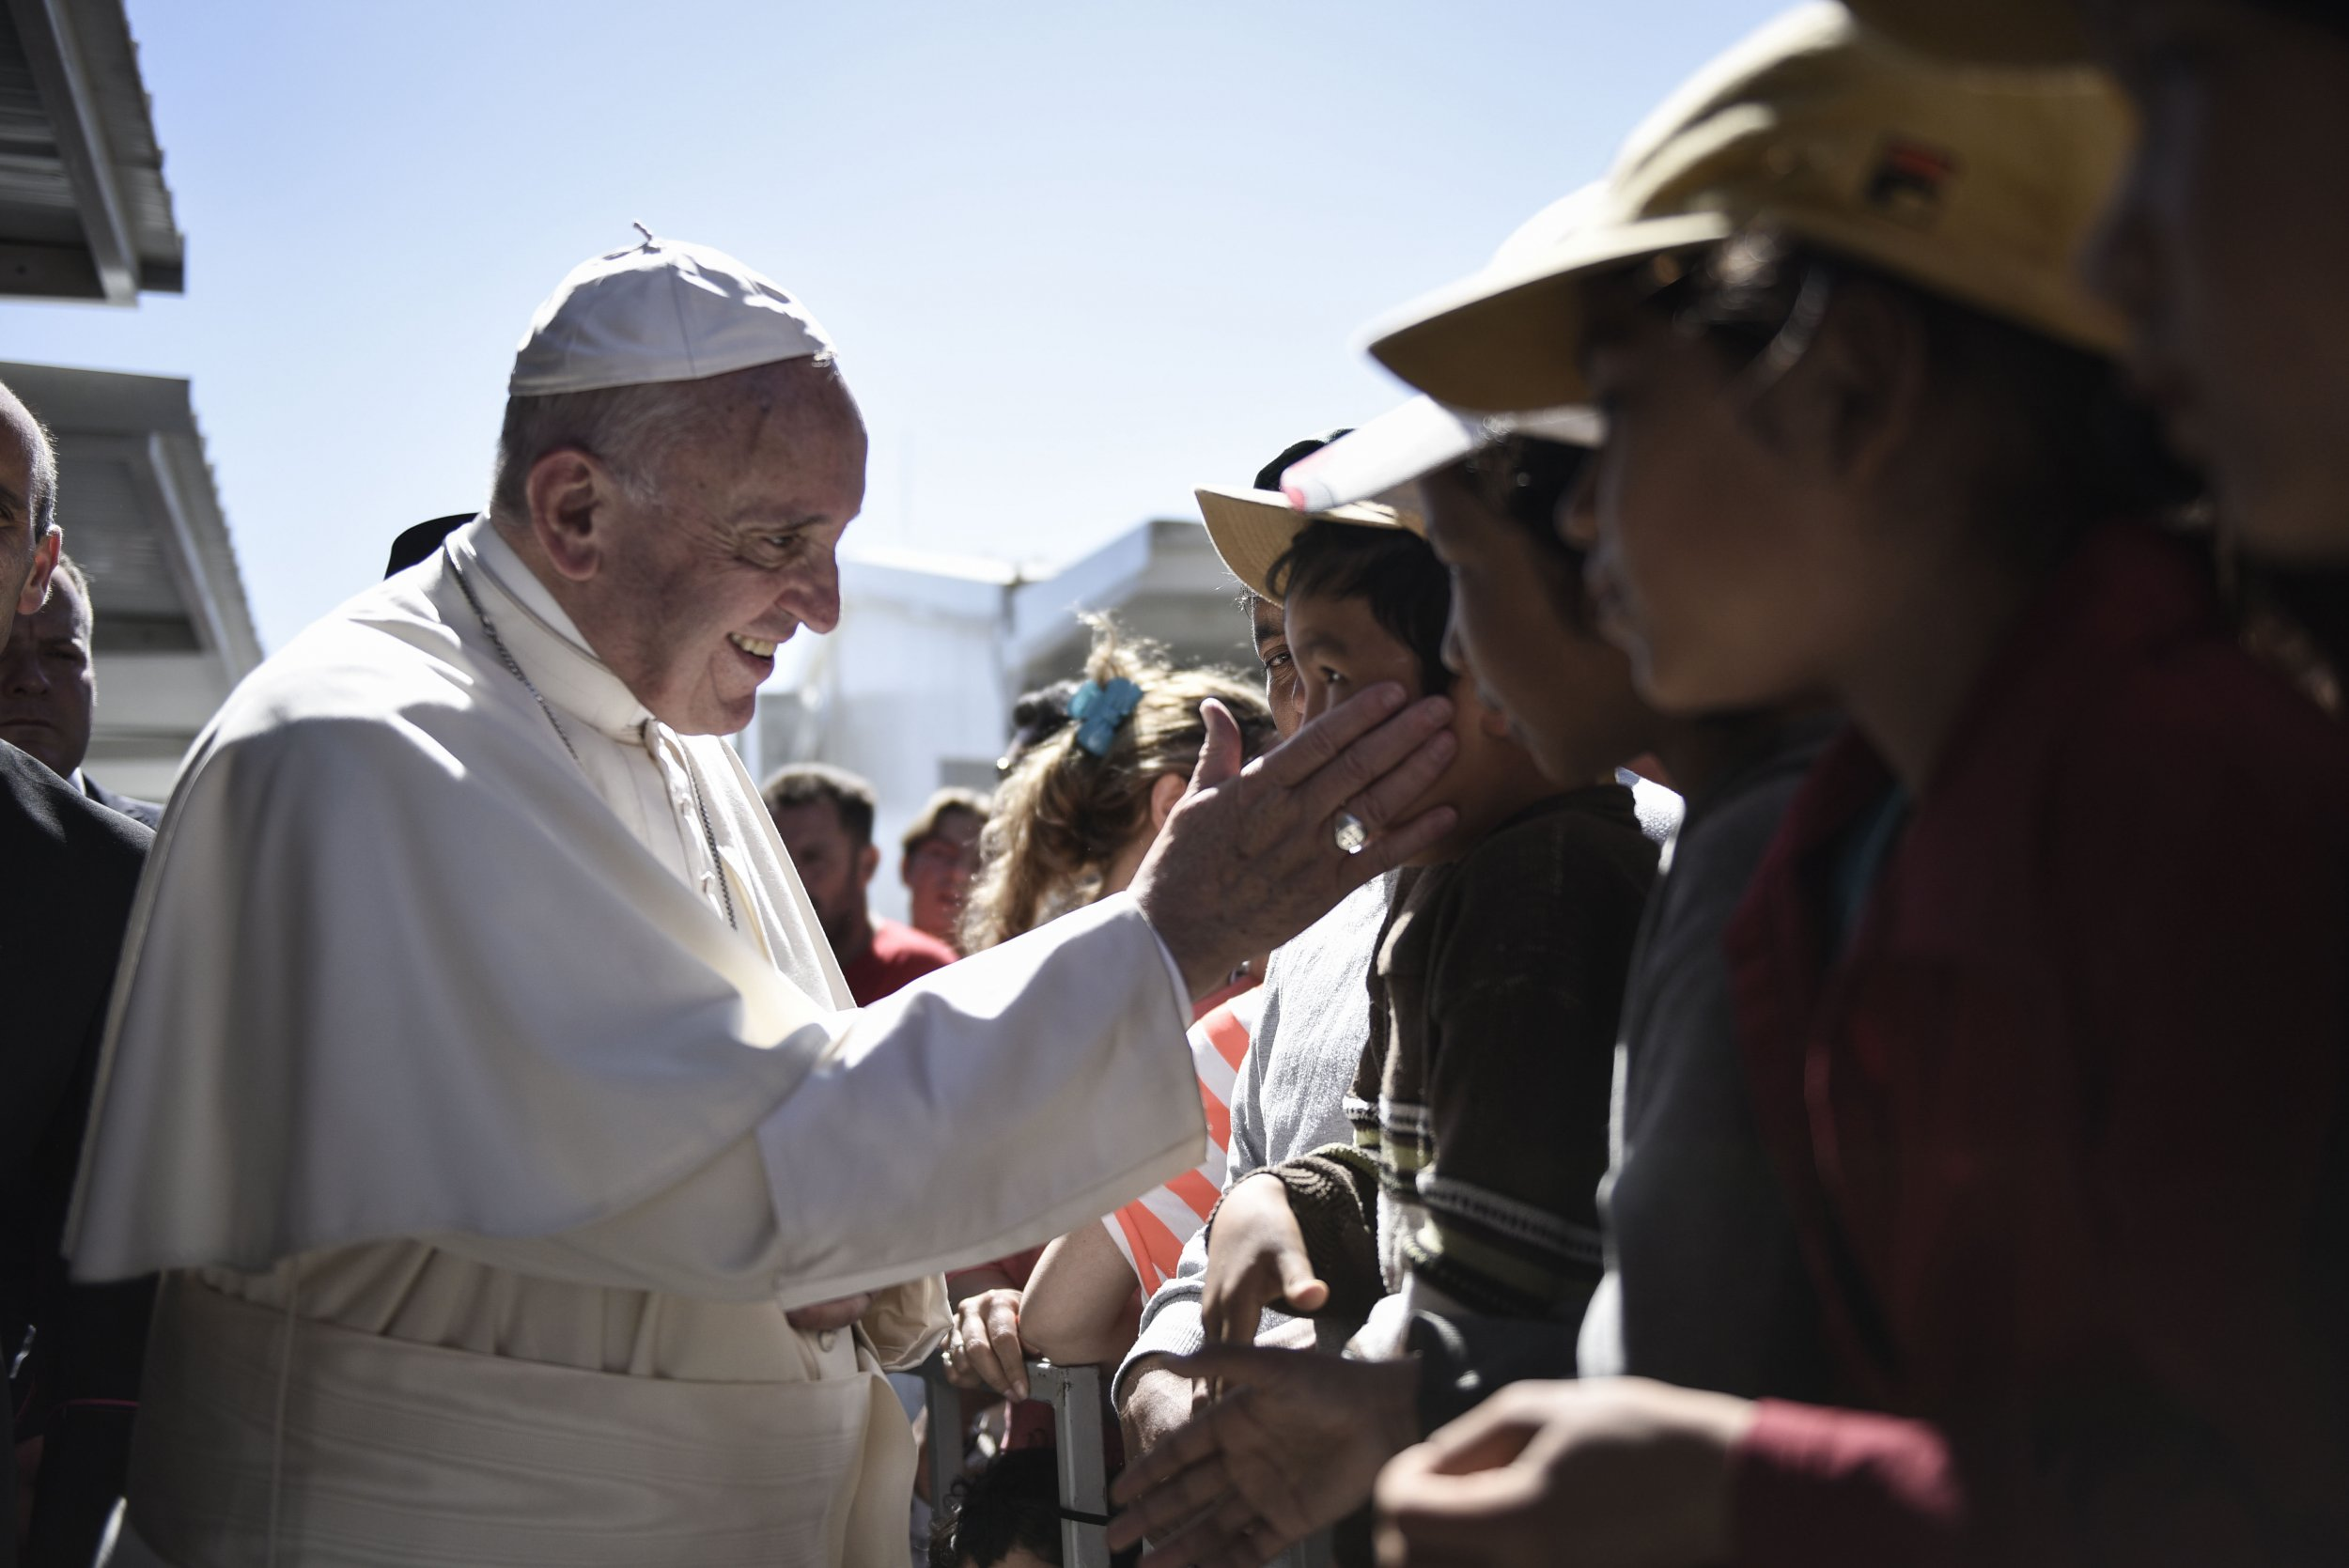 Pope Francis meets migrants in Lesbos.